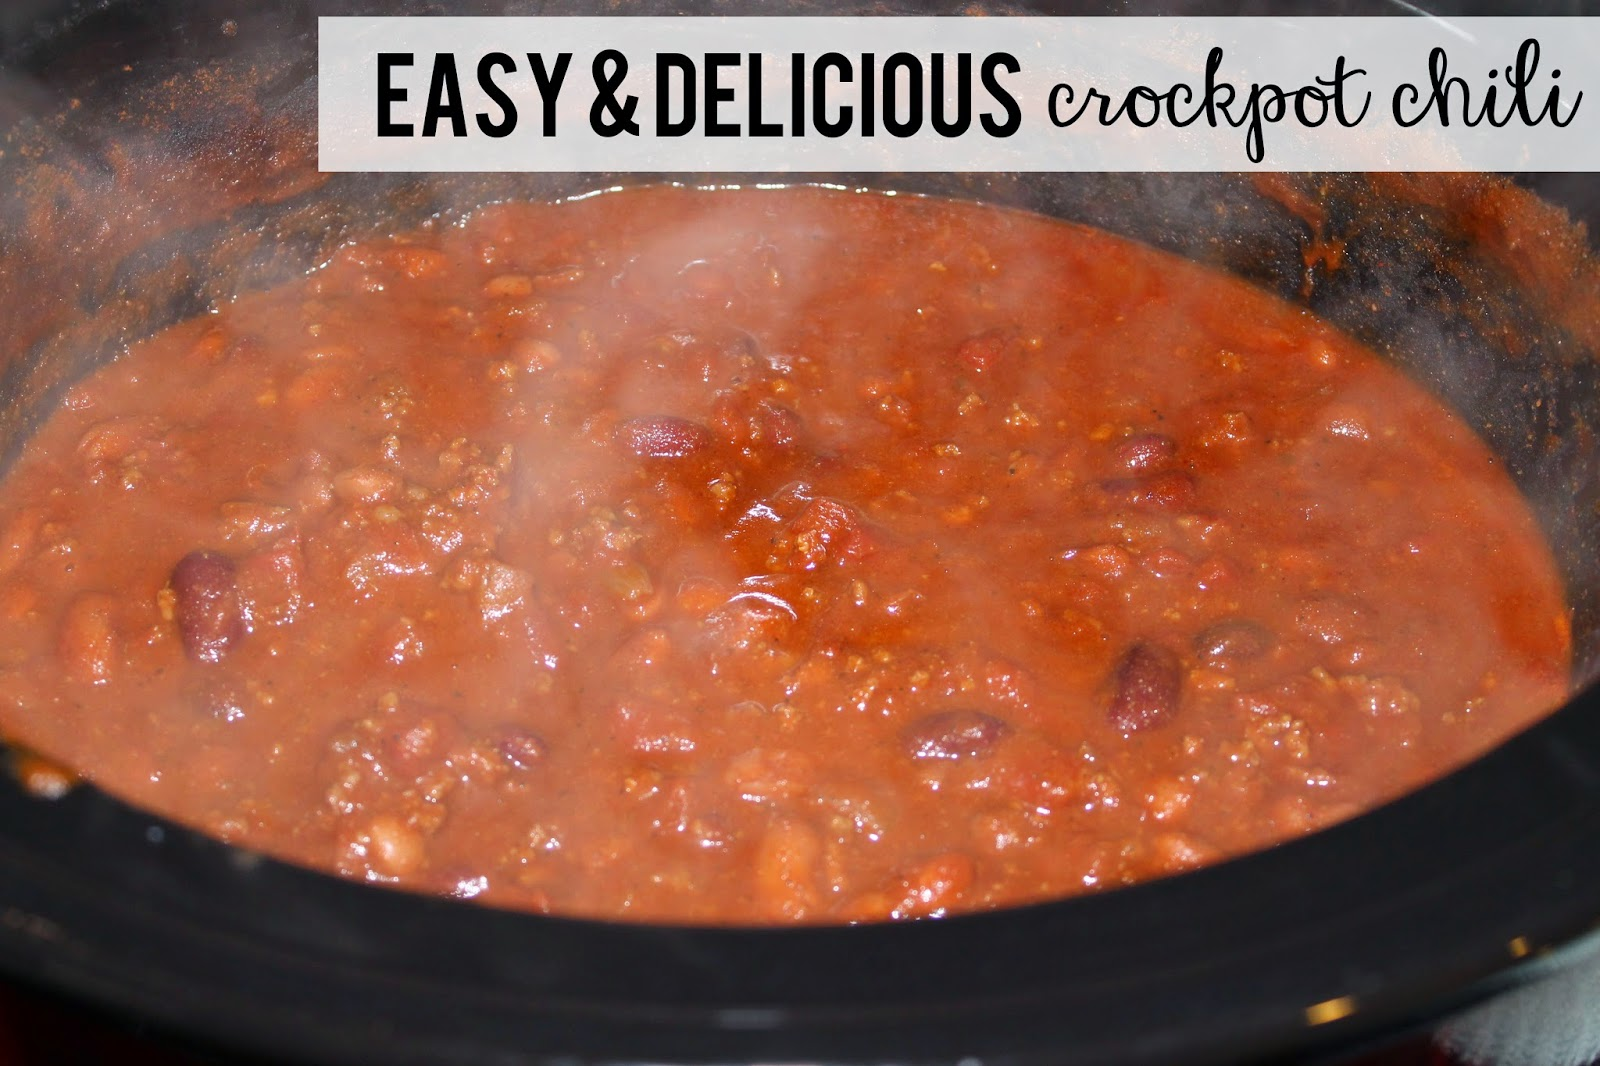 Need simple chili recipes? Find easy to make chili recipes from our Simple and Delicious Magazine. These quick and simple chili recipes make a delicious meal.